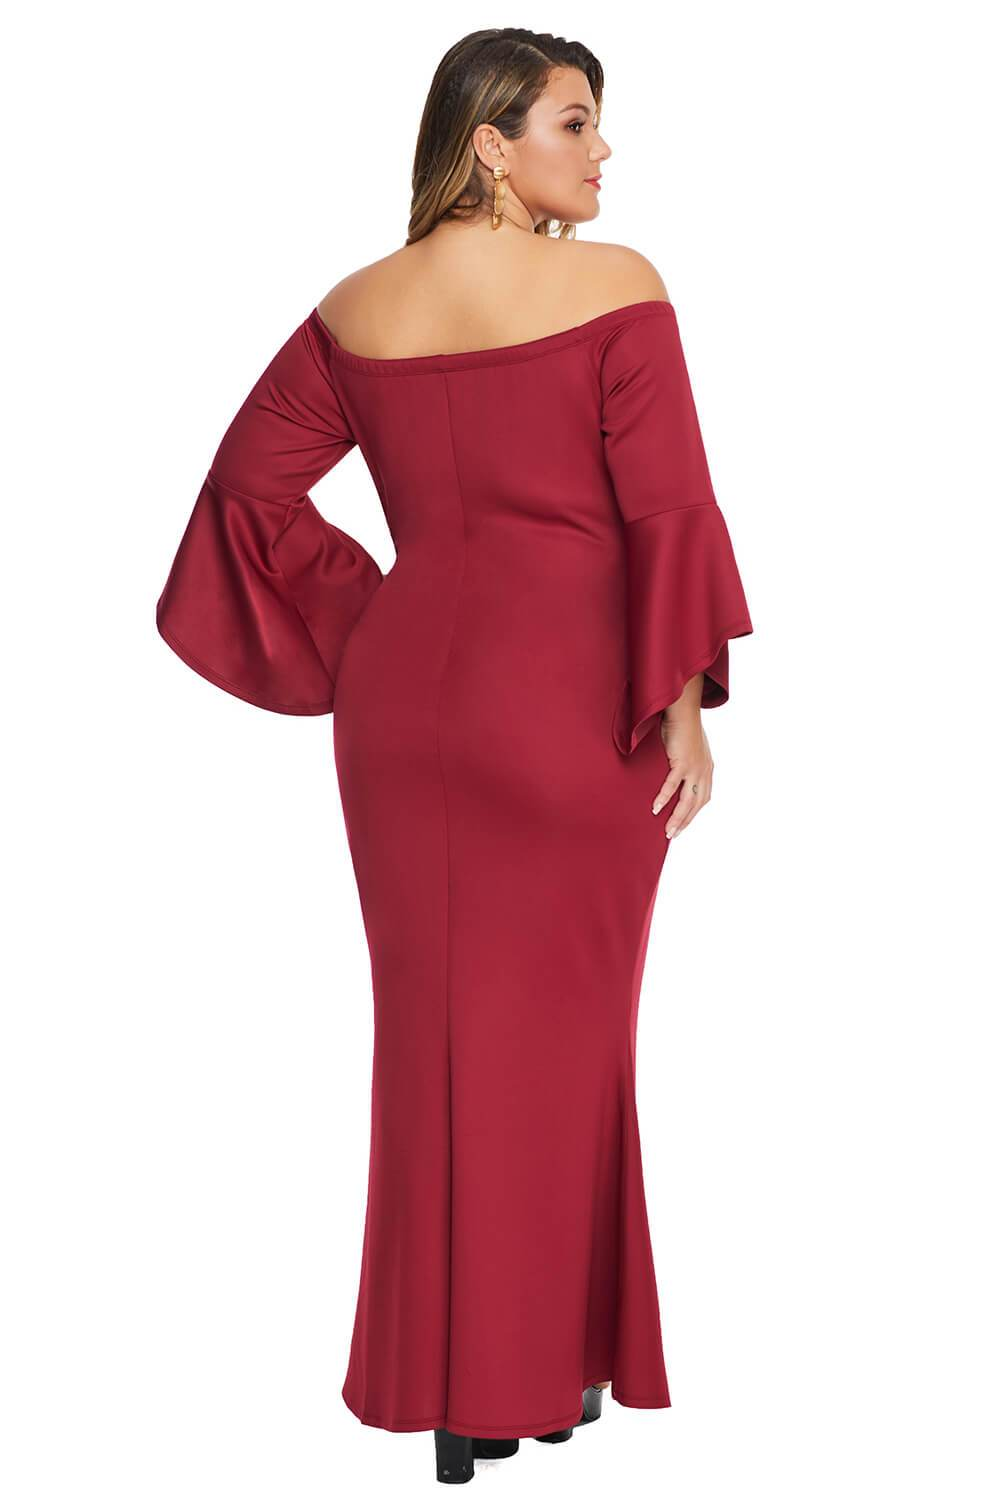 Off Shoulder Flare Sleeve Red Plus Size Maxi Dress